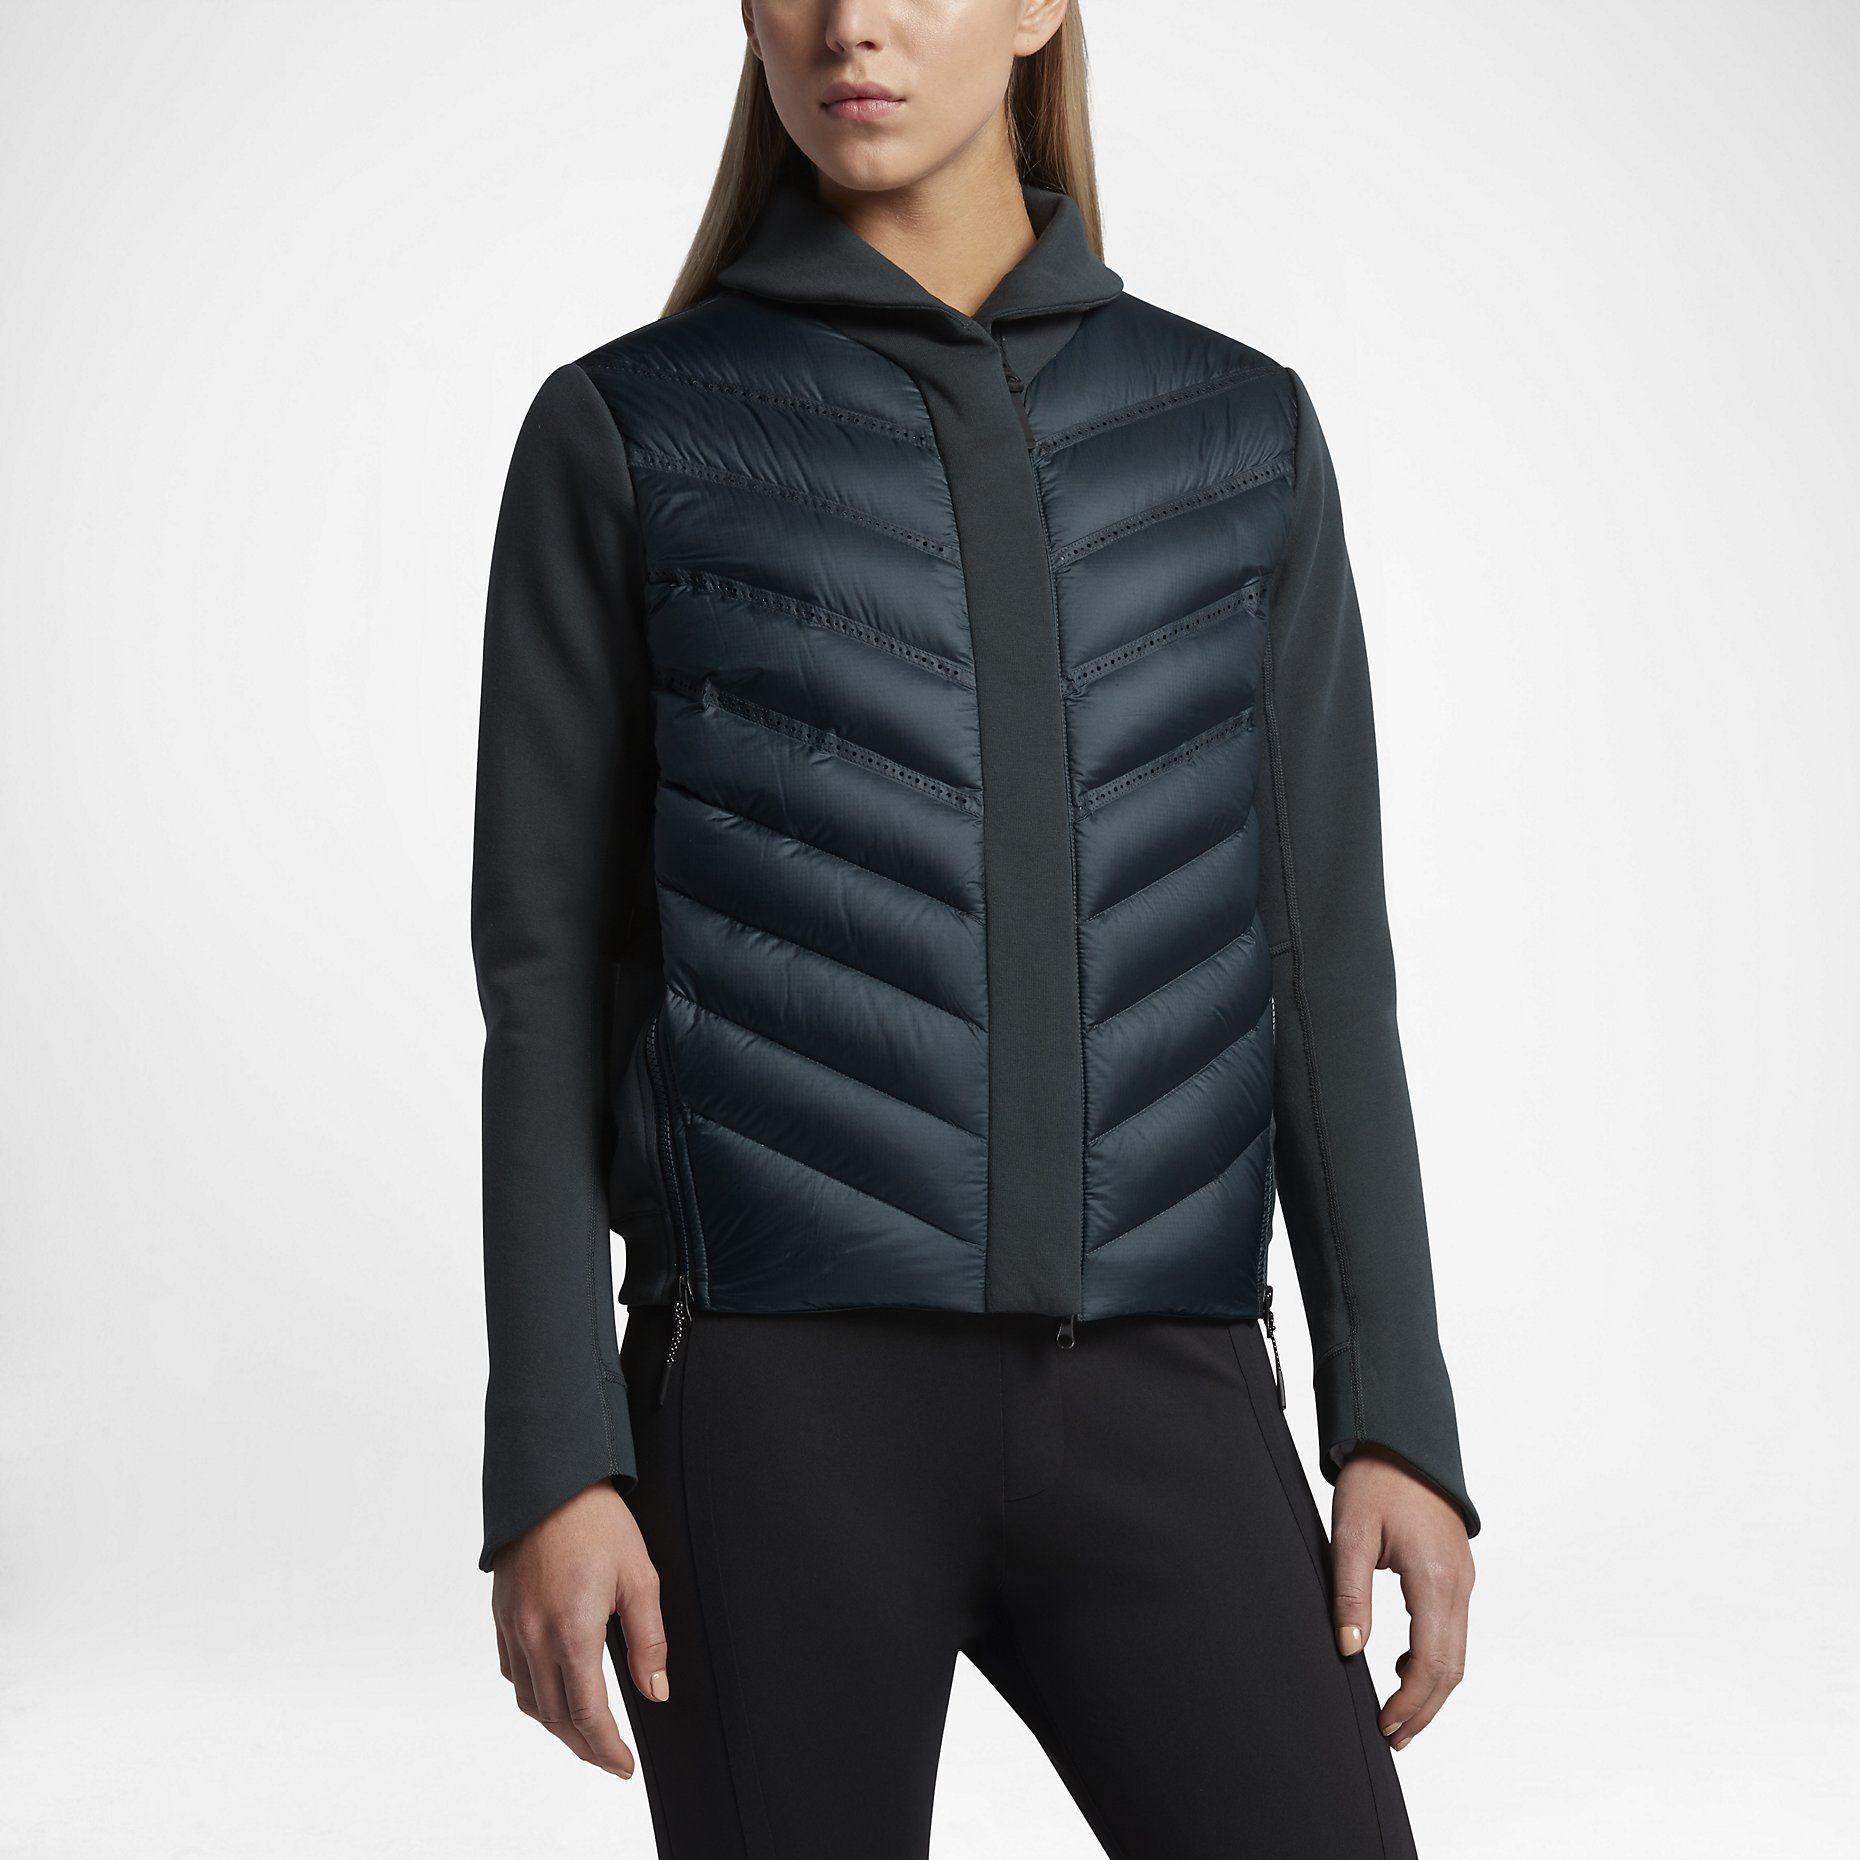 nike sportswear tech fleece aeroloft Bomber jacket women